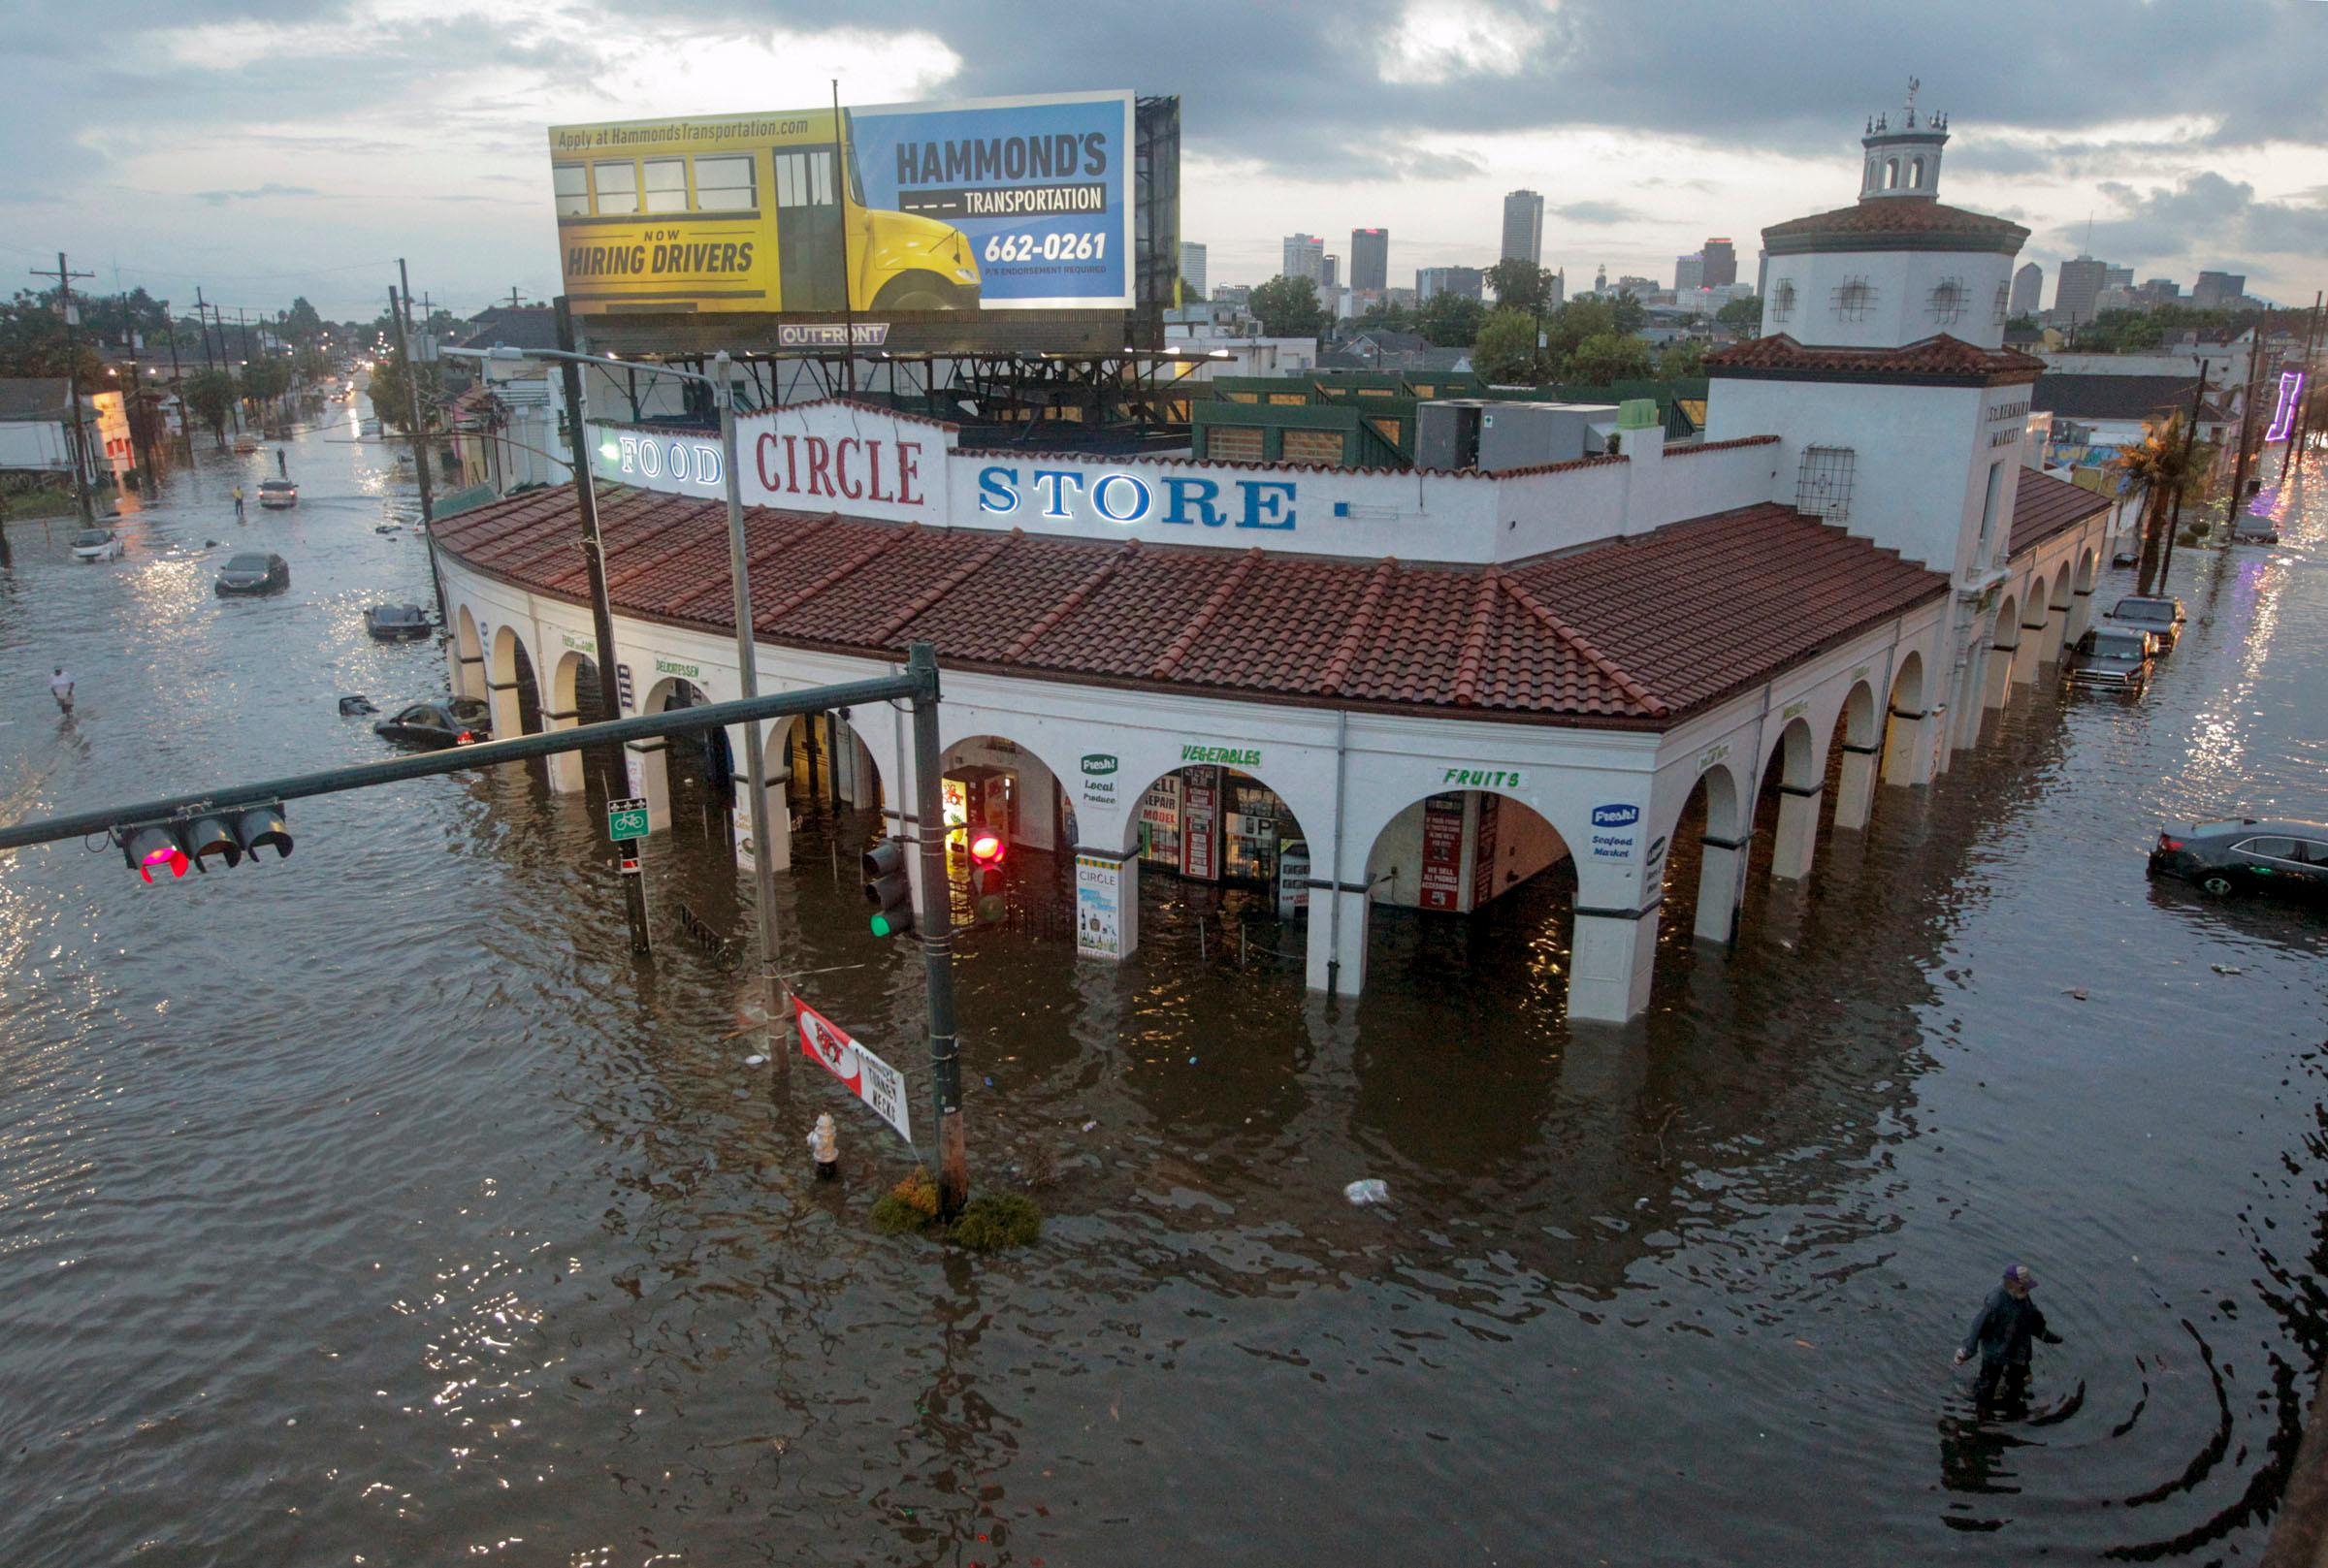 FILE - This Saturday, Aug. 5, 2017, file photo shows the Circle Food Store engulfed in floodwaters in New Orleans. With more rain in the forecast and city water pumps malfunctioning after weekend floods, New Orleans' mayor is urging residents of some waterlogged neighborhoods to move their vehicles to higher ground. Mayor Mitch Landrieu's office said early Thursday, Aug. 10, 2017, the city has lost service to one of its power turbines, which powers most of the pumping stations service the East Bank of New Orleans. (Brett Duke/NOLA.com The Times-Picayune via AP, File)